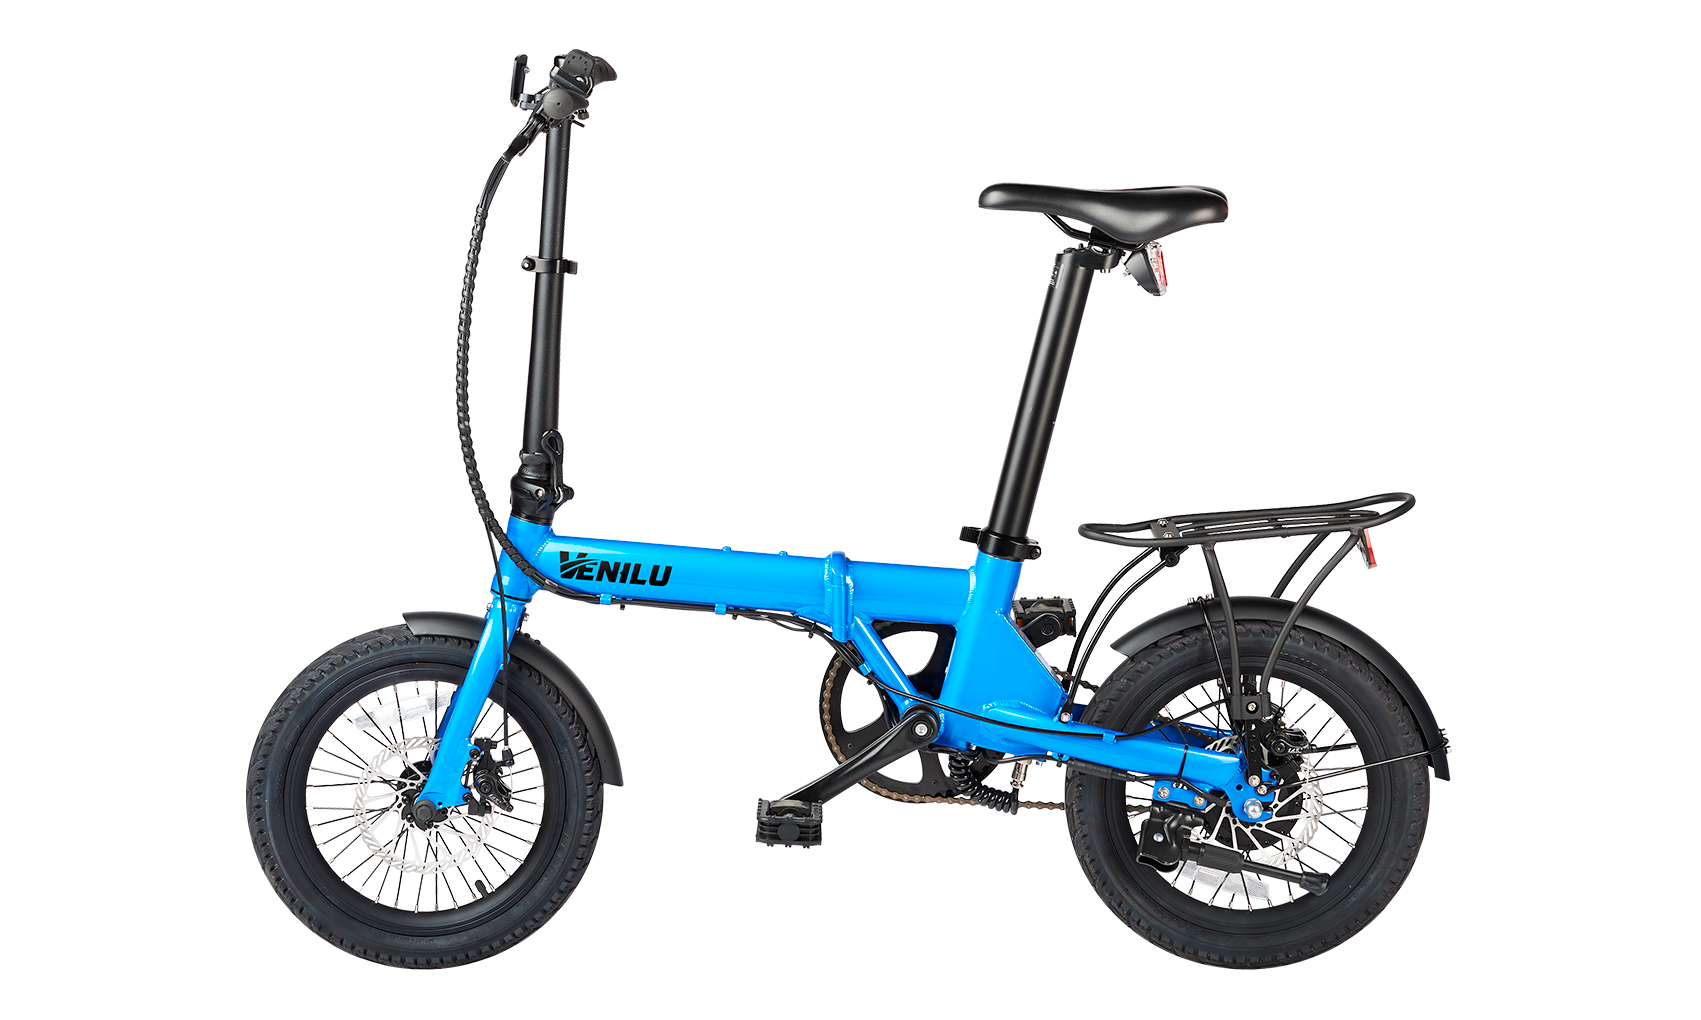 Venilu Urbana Blue – The Lightest Folding E-Bike 16″ 13,6kg